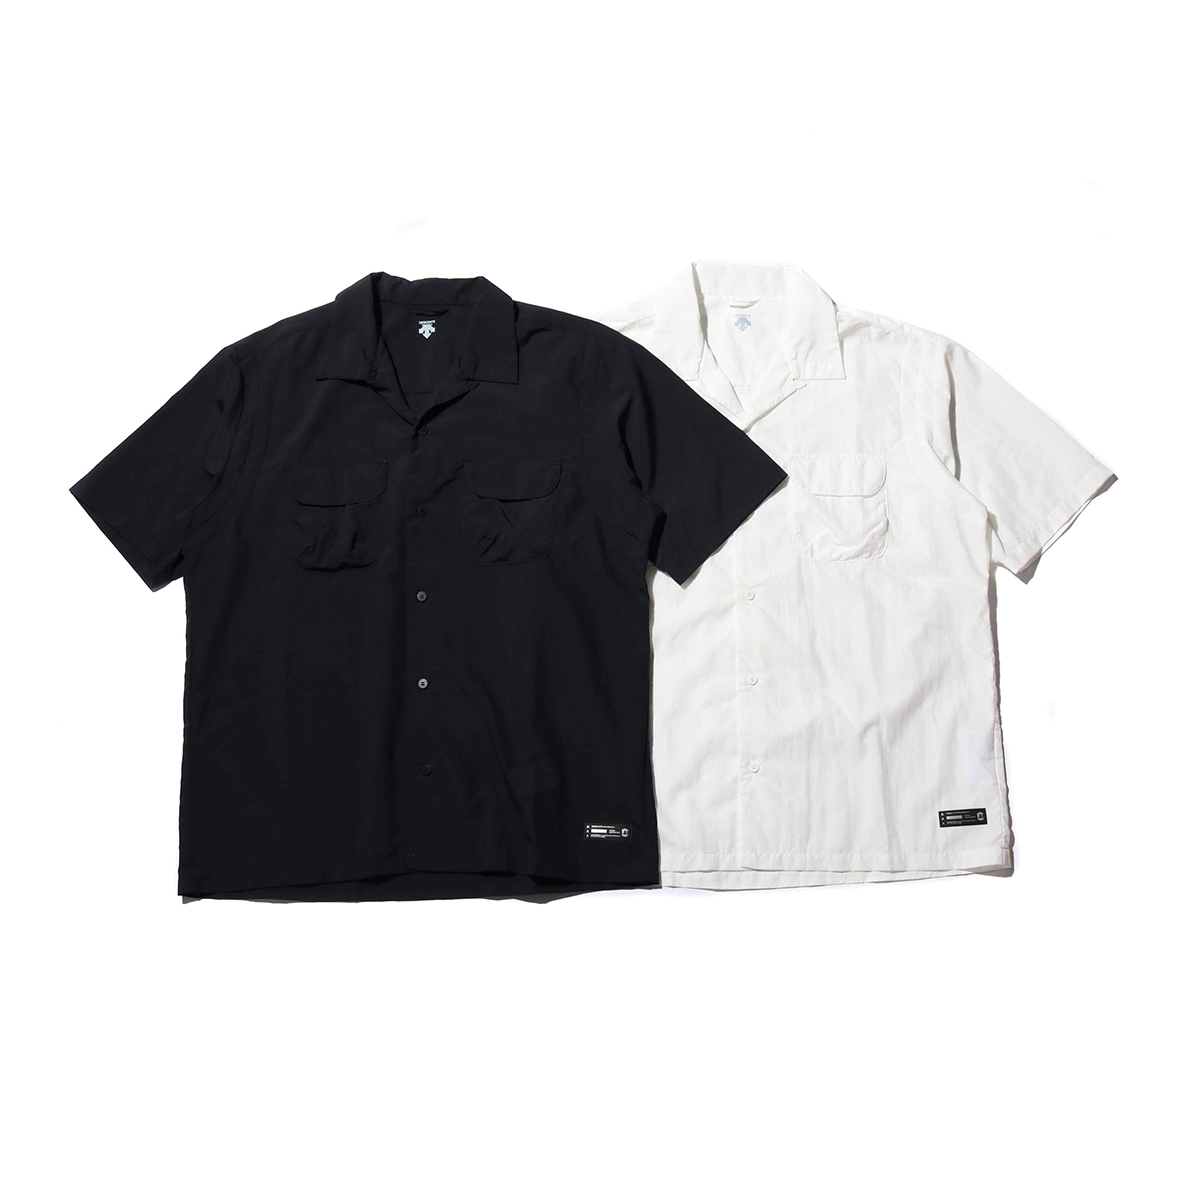 DESCENTE ddd X ATMOS LAB H/S BORING SHIRT